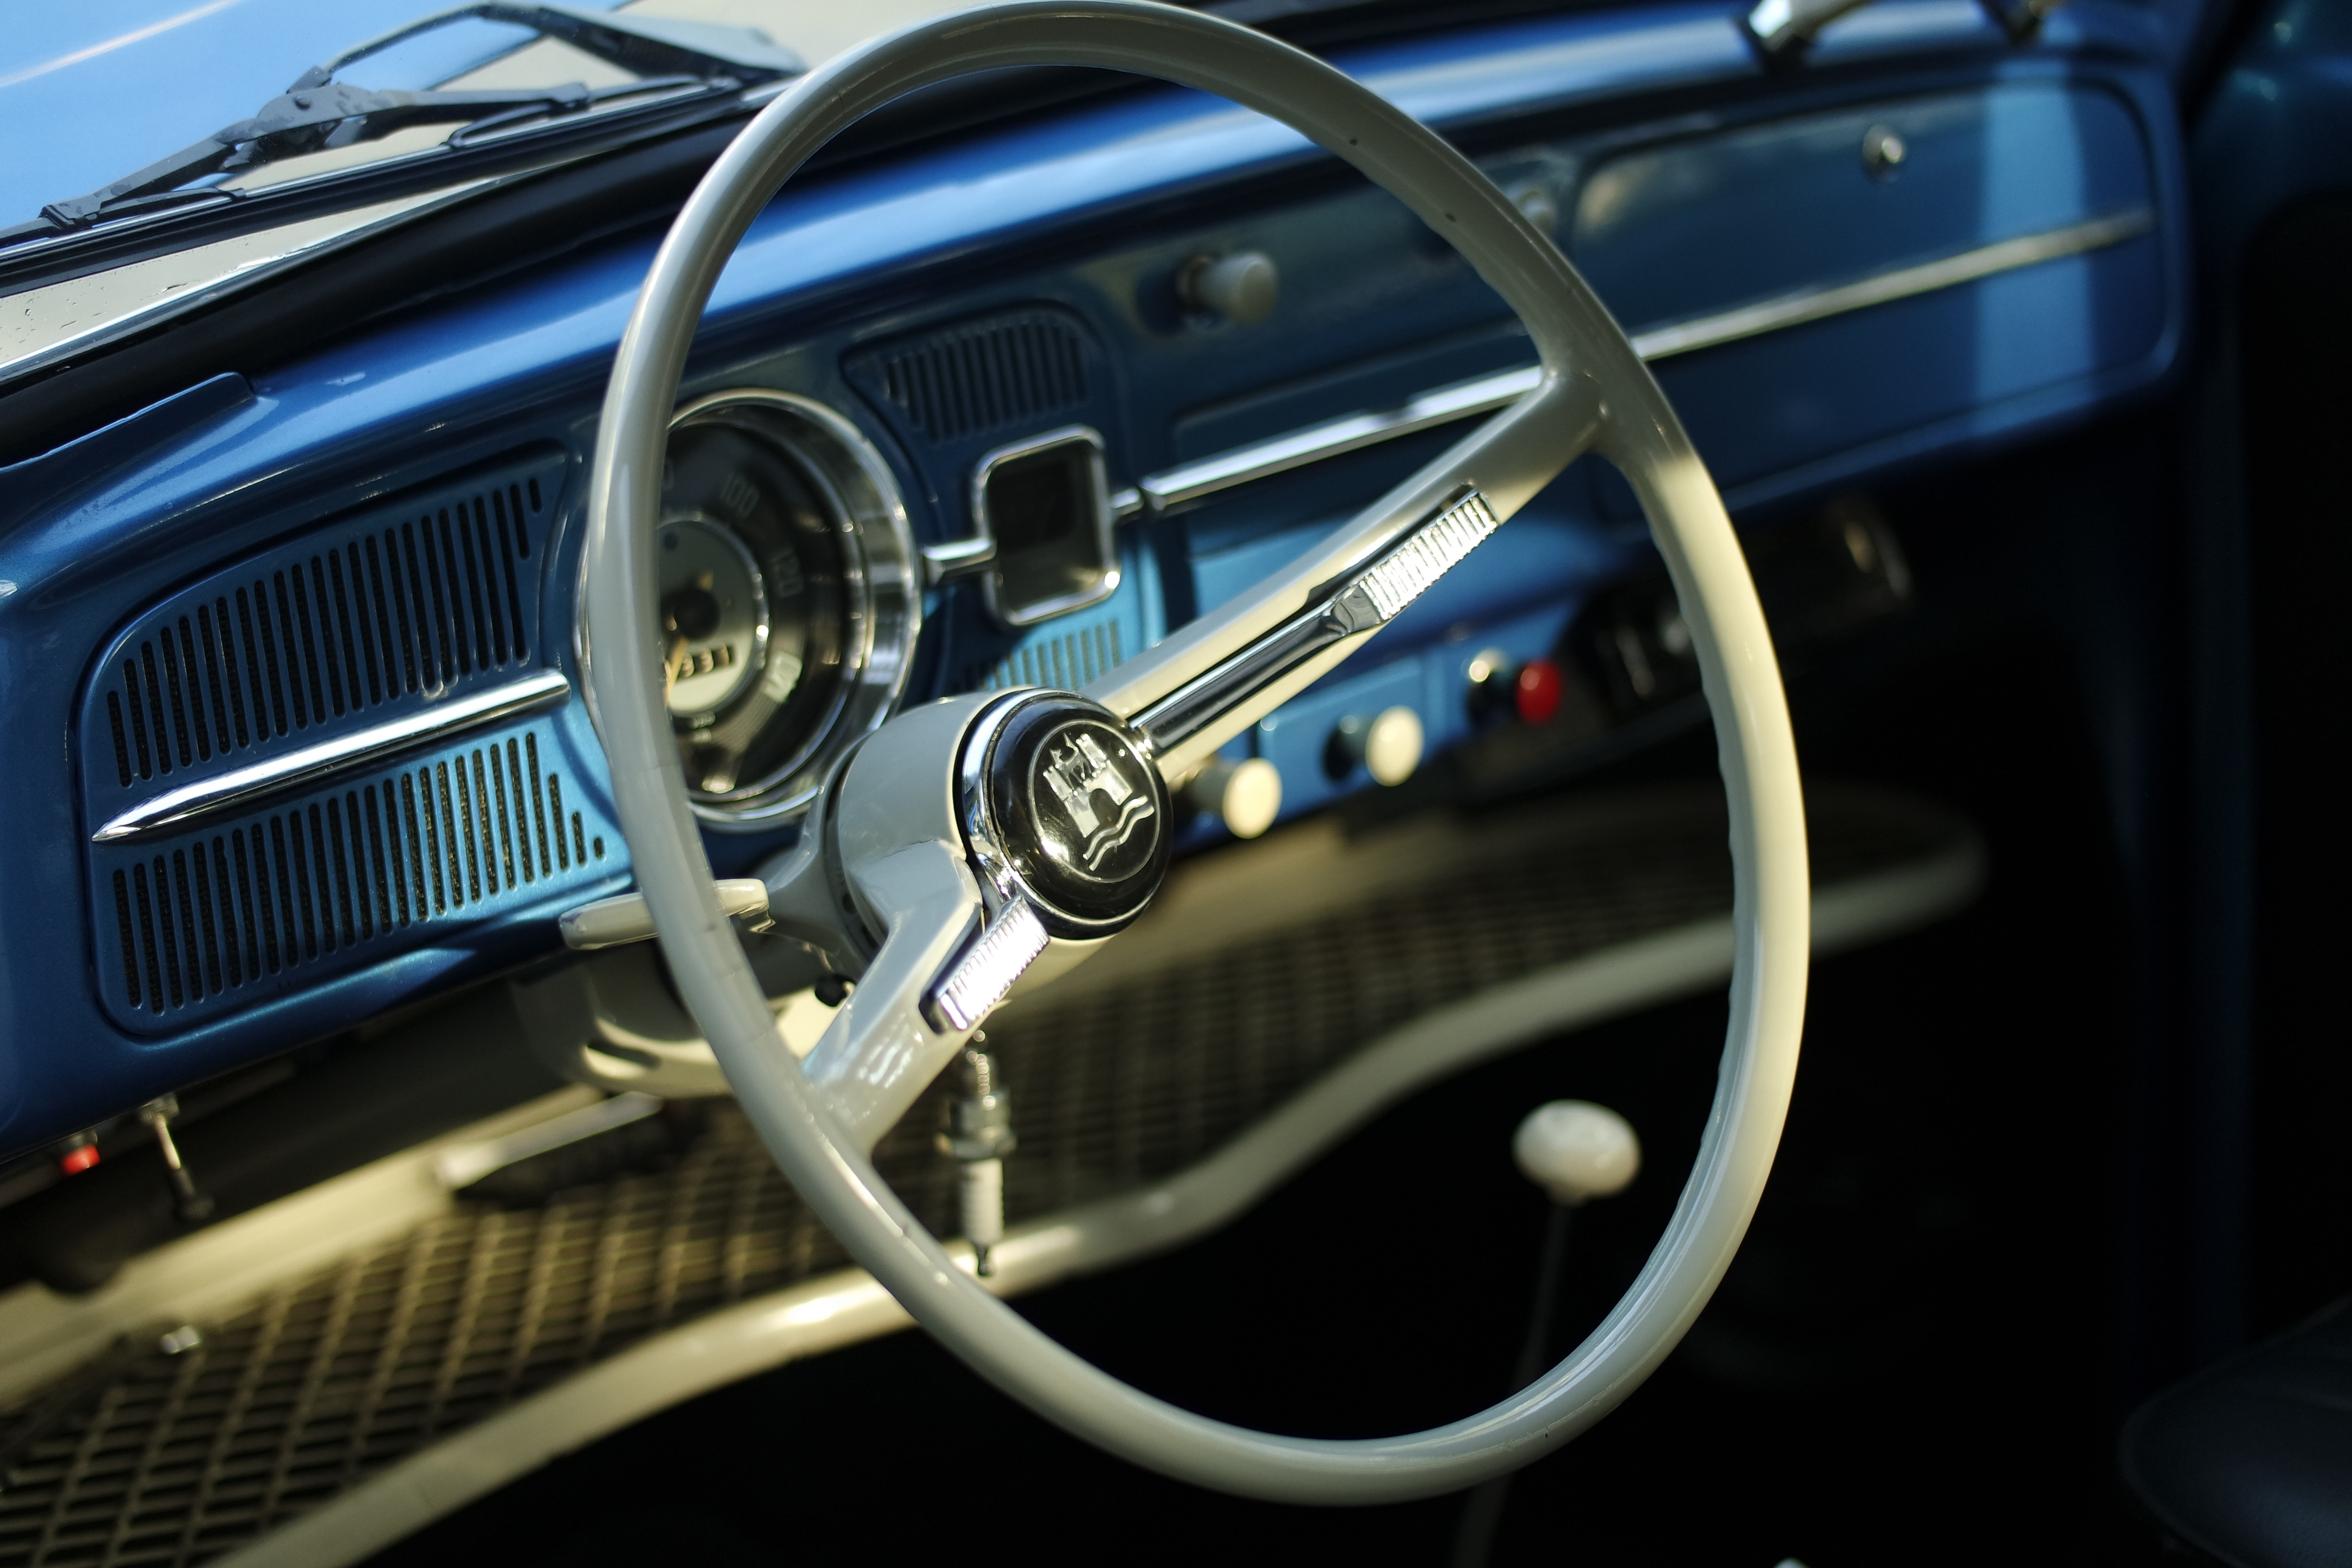 Grey Classic Car Steering Wheel, Automobile, Technology, Vehicle, Tuning, HQ Photo